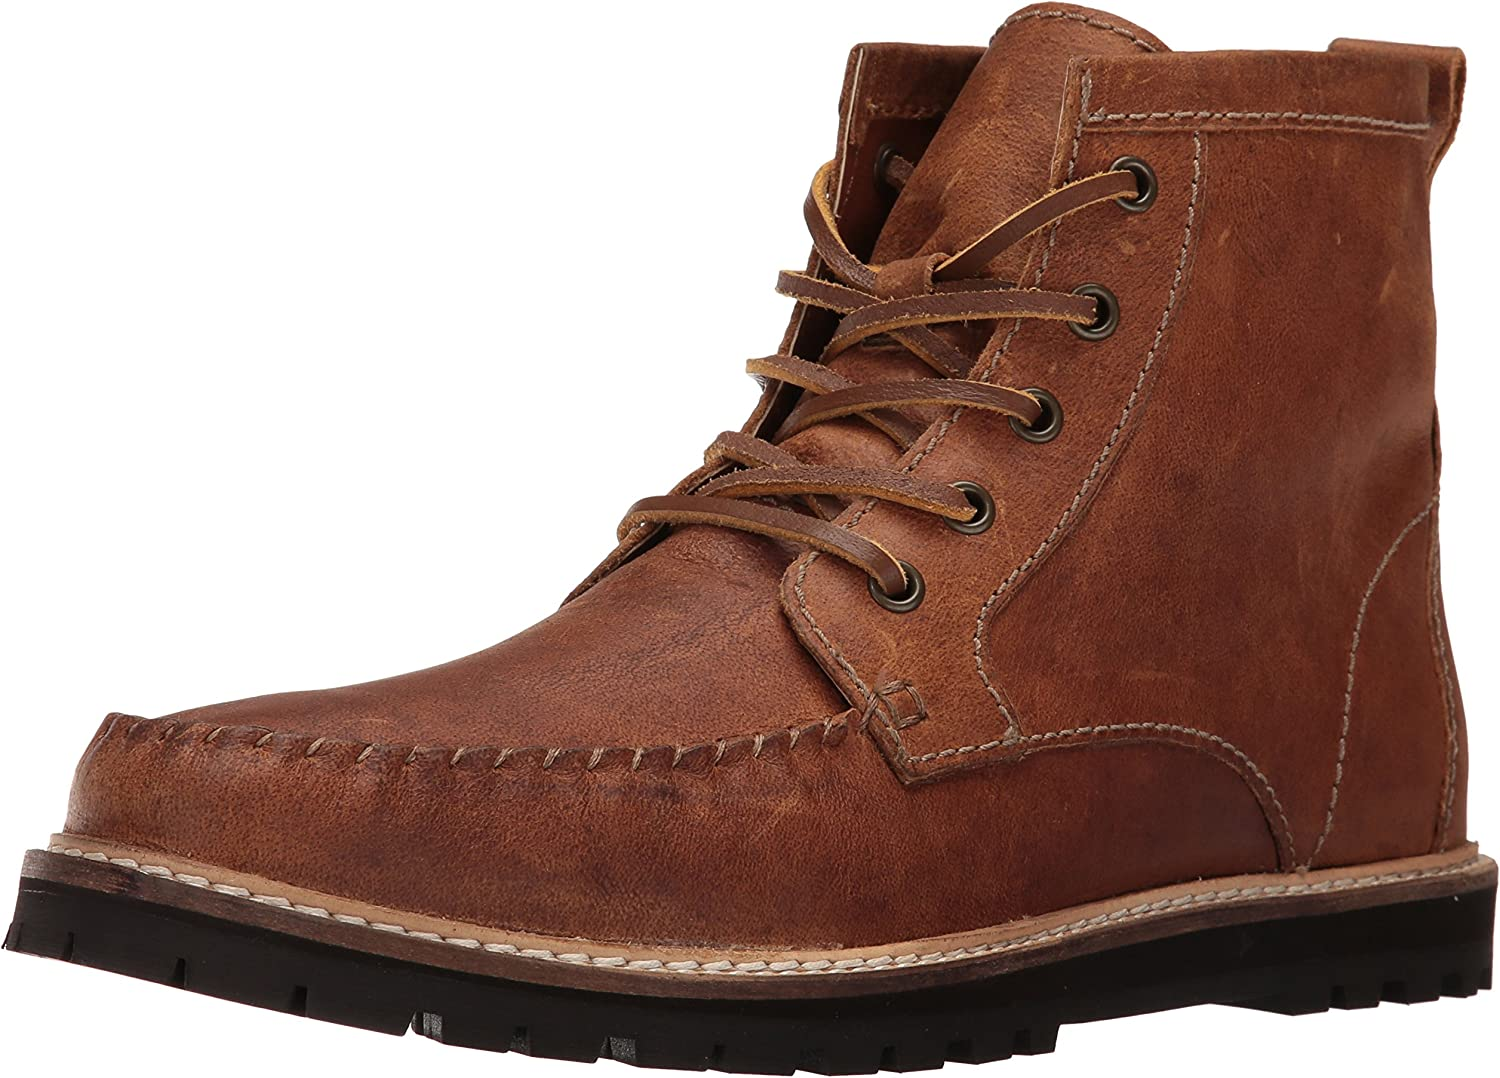 Kenneth Cole REACTION Mens Mesh Well Boot